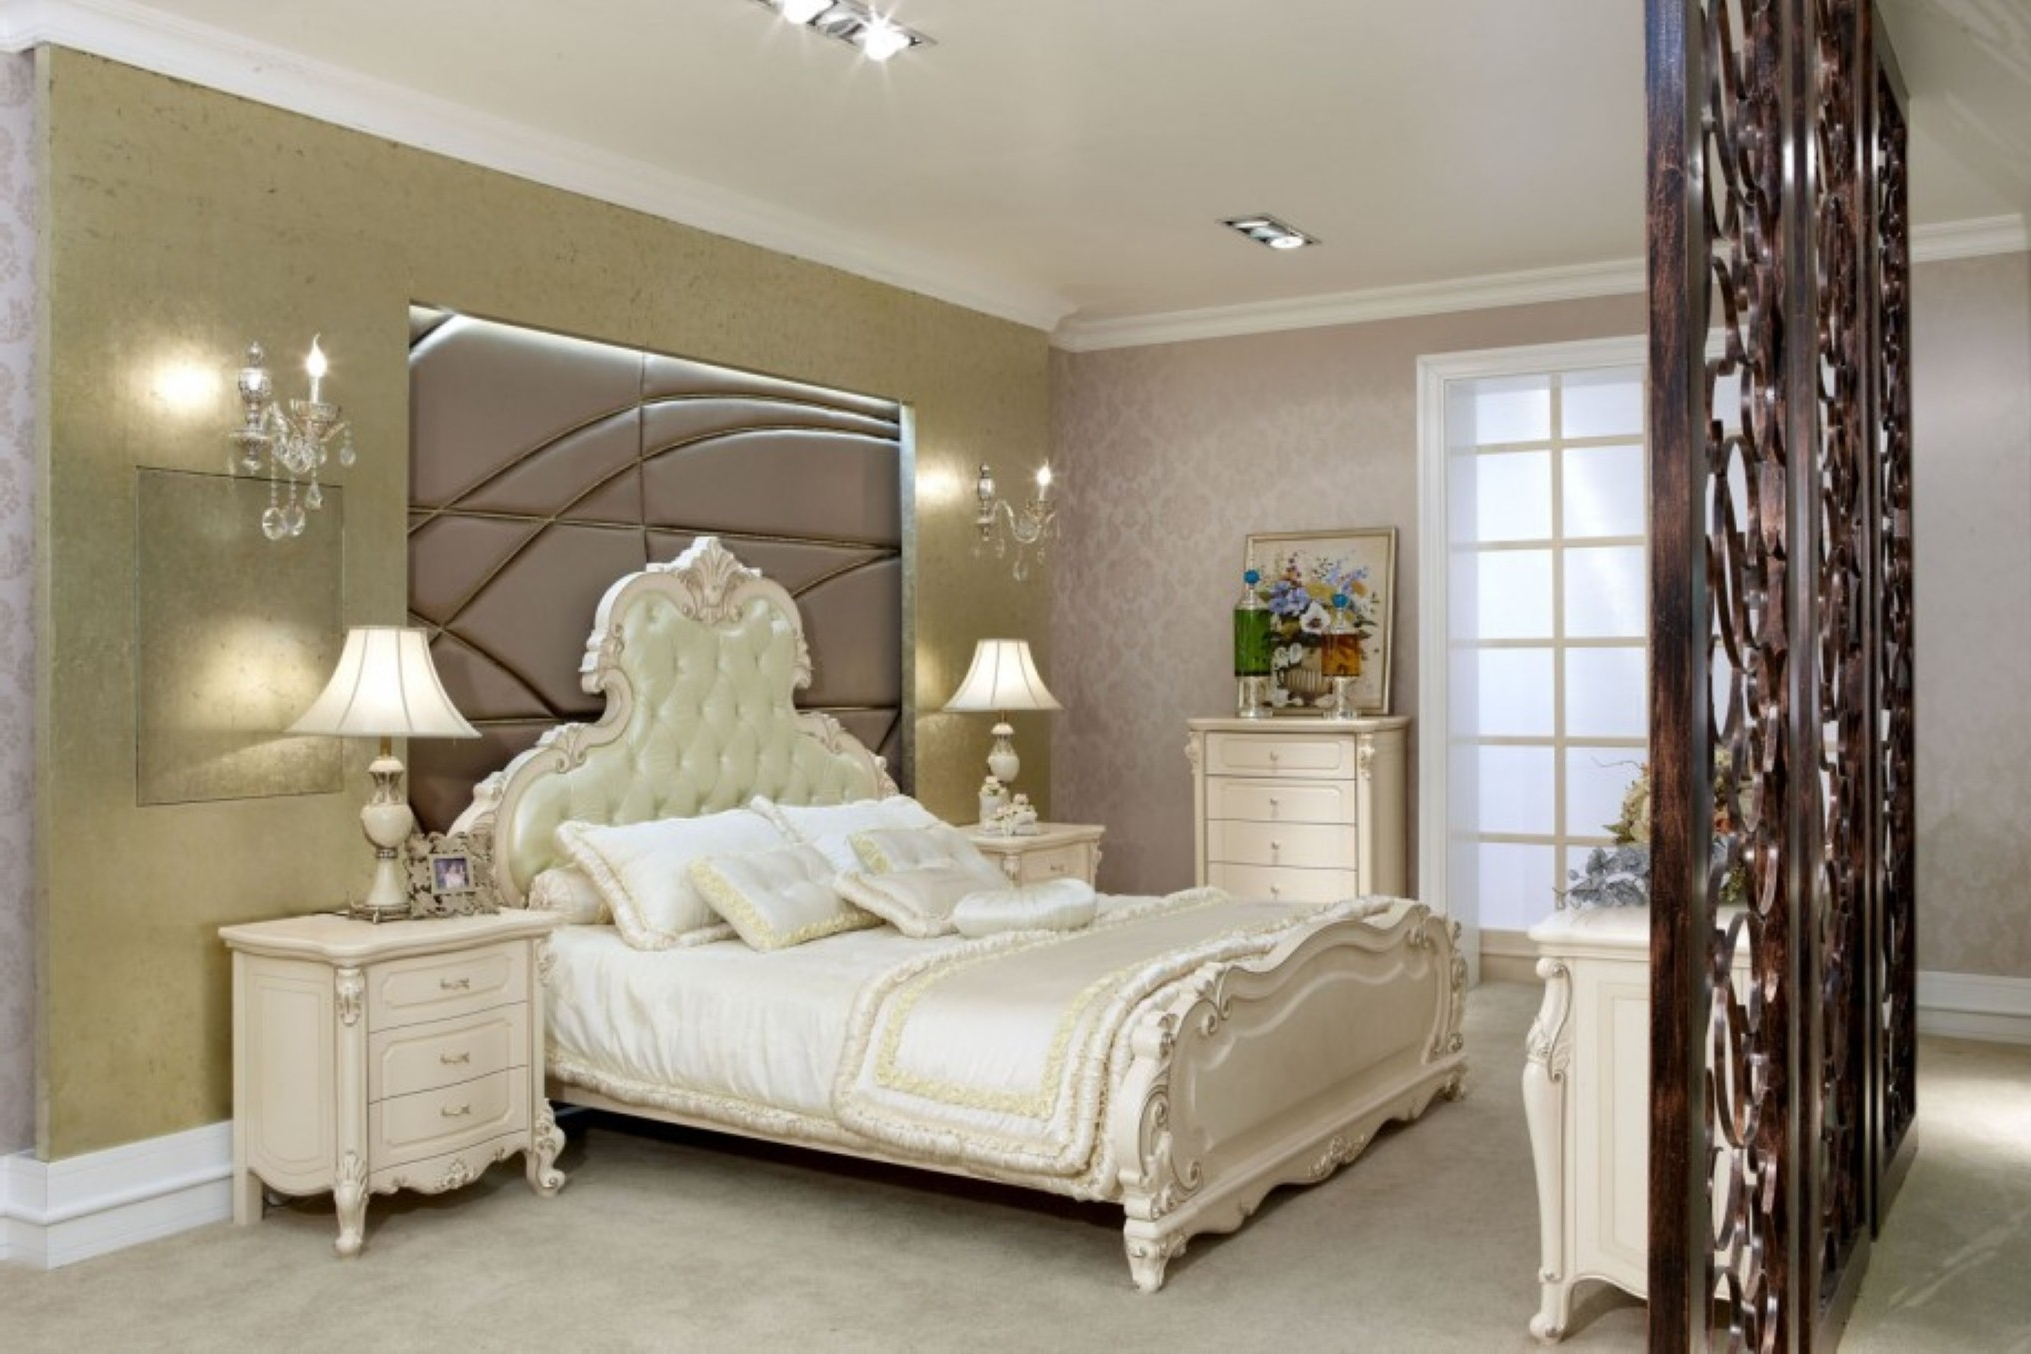 Neat Inspirational Cream Furniture As Fitted Bedroom Furniture For Divine Design Ideas Of Great Creation With Innovative Bedroom (Image 9 of 21)